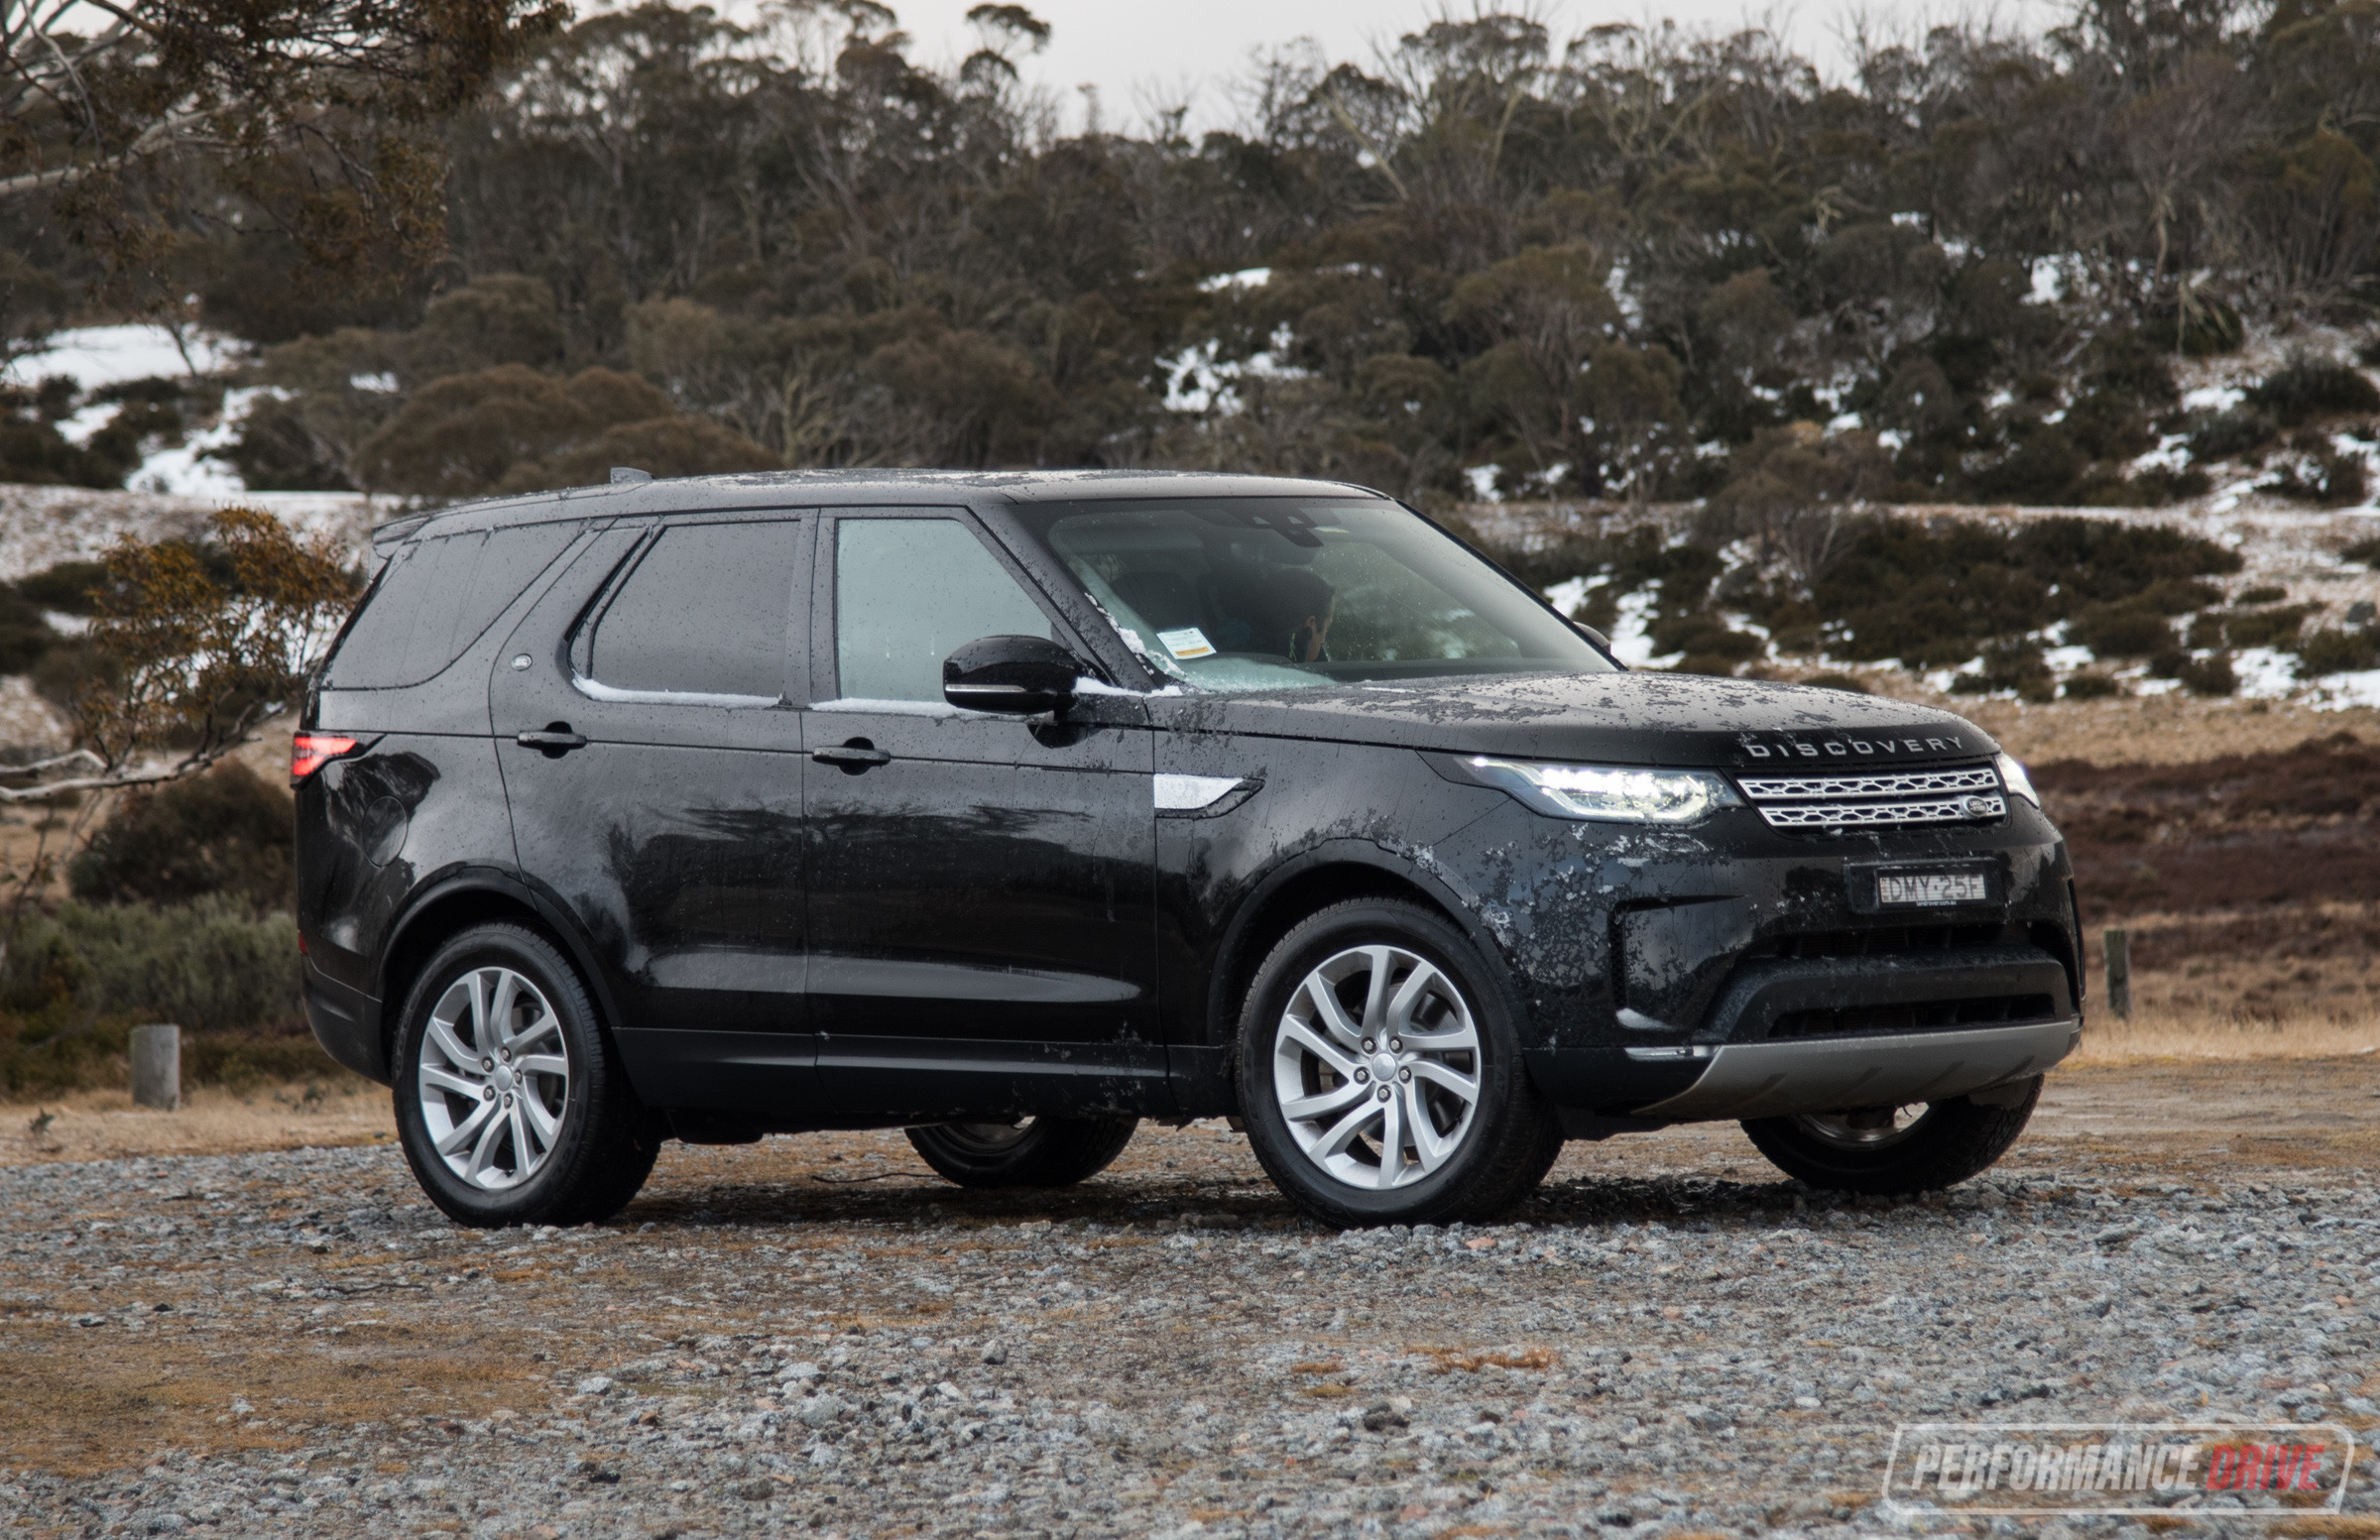 2017 Land Rover Discovery Sd4 Hse Review Video Performancedrive